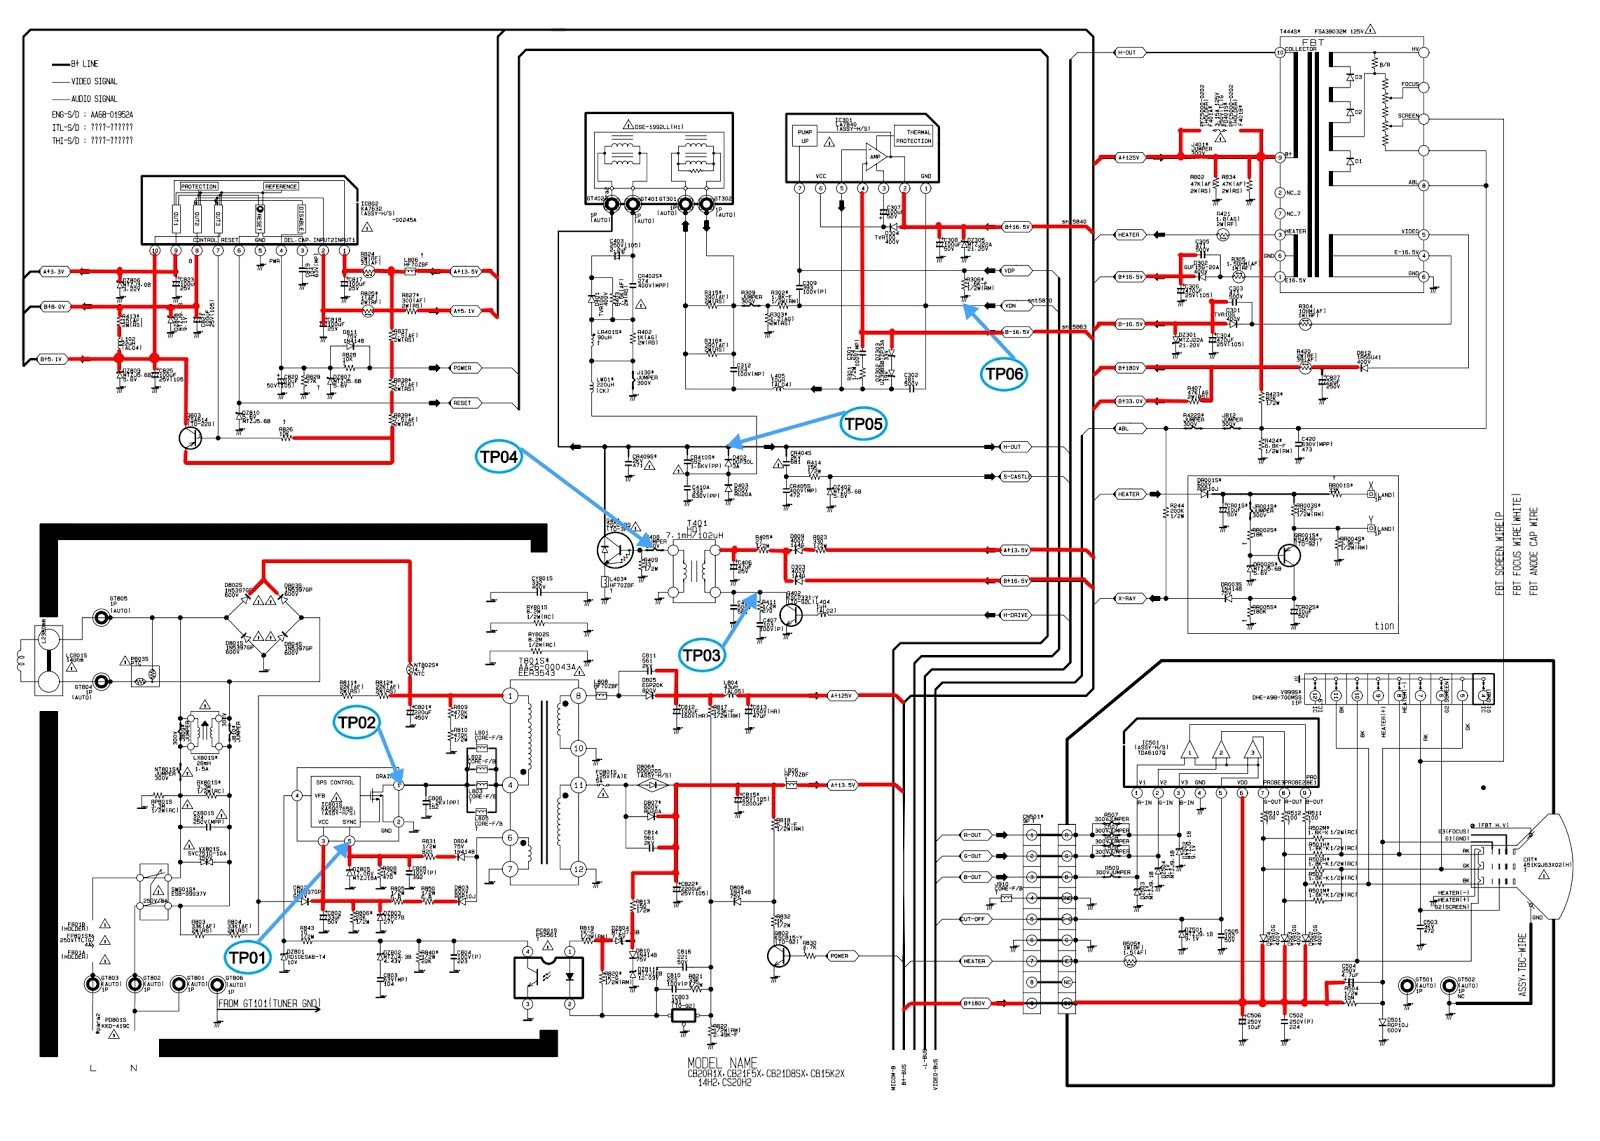 Wiring Diagram Free Download Fireman - Toyota 1tr Engine Valve Timing  Diagram - furnaces.tukune.jeanjaures37.frWiring Diagram Resource